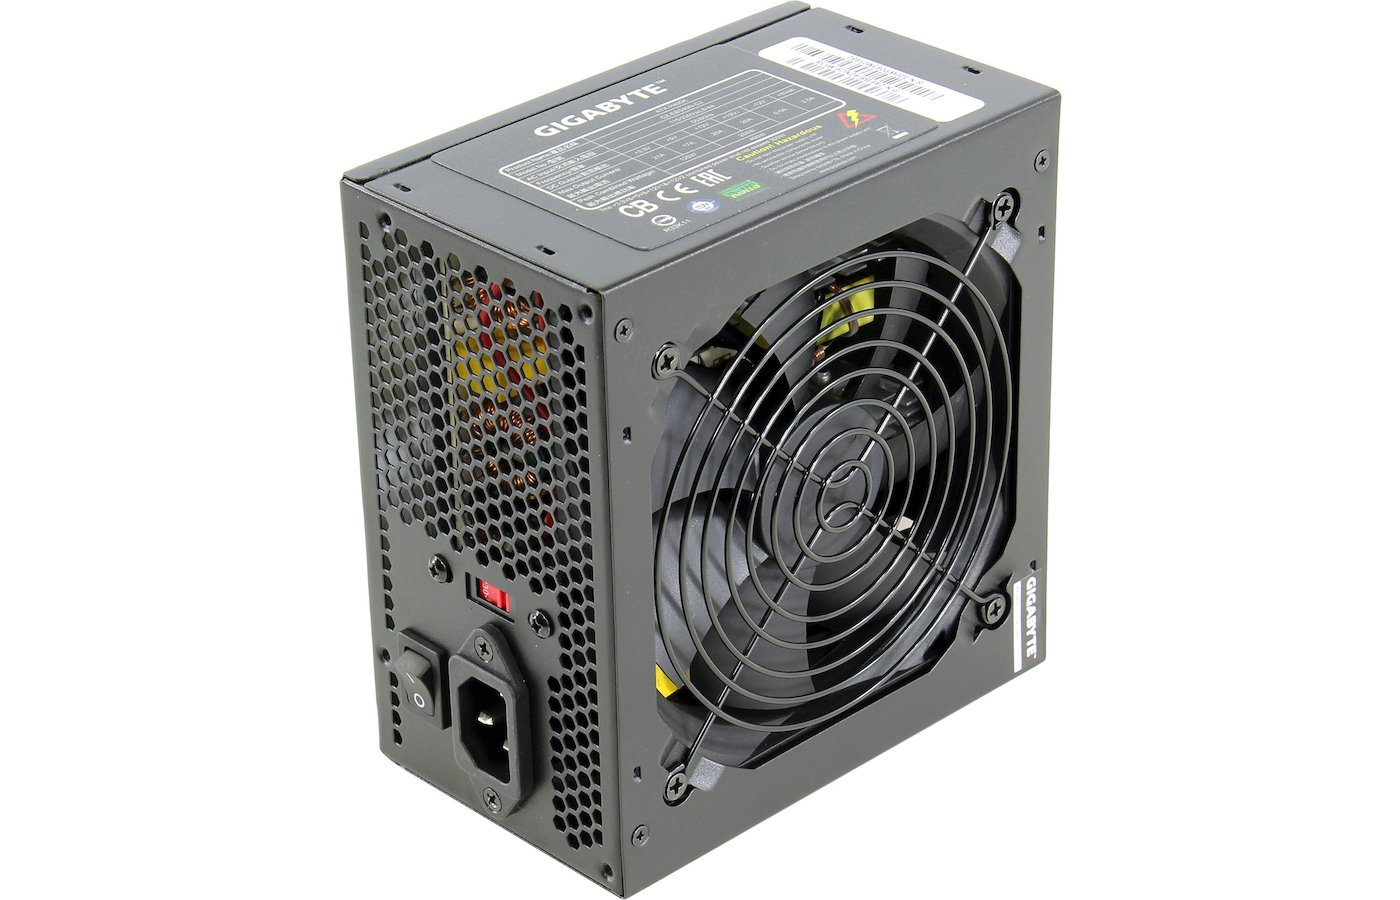 Блок питания Gigabyte ATX 400W GZ-EBS40N-C3 (24+4+4pin) 120mm fan 3xSATA